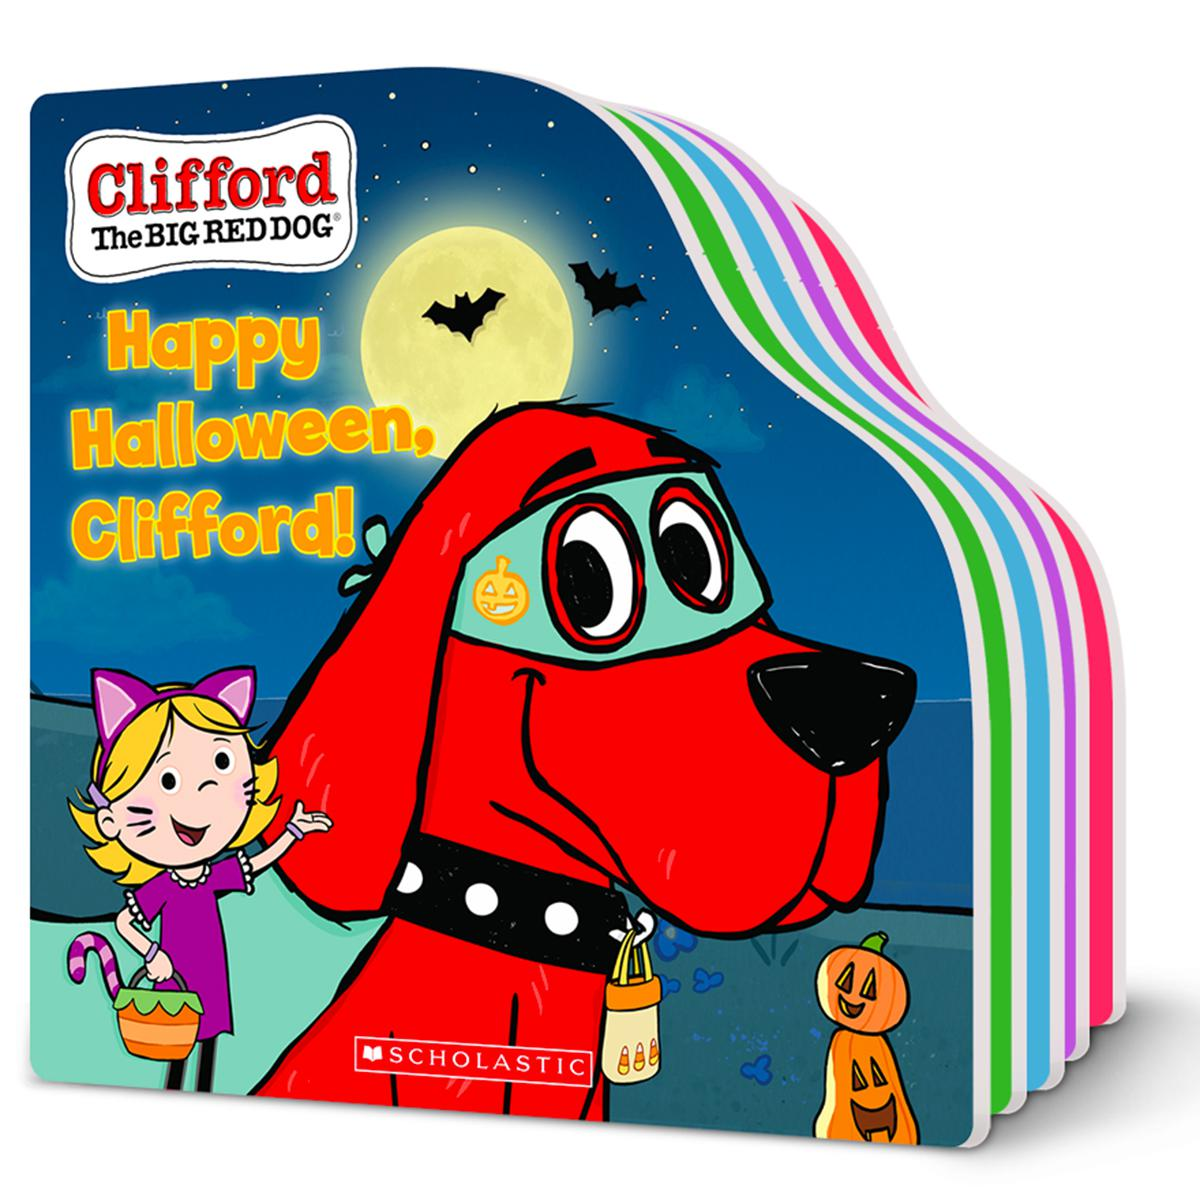 Clifford the Big Red Dog: Happy Halloween, Clifford!